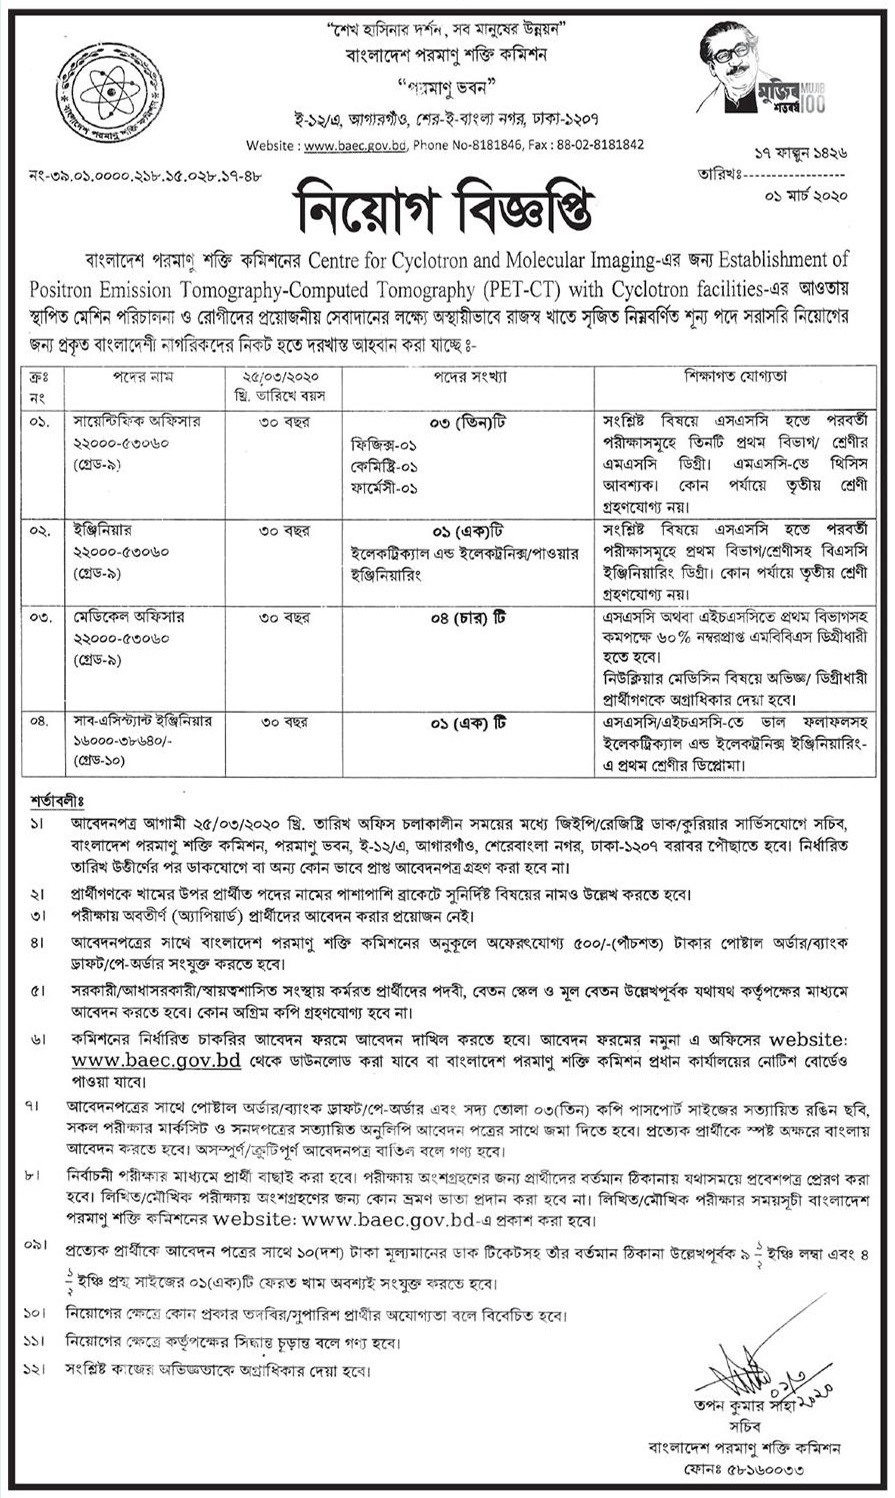 Bangladesh Atomic Energy Commission Job Circular 2020